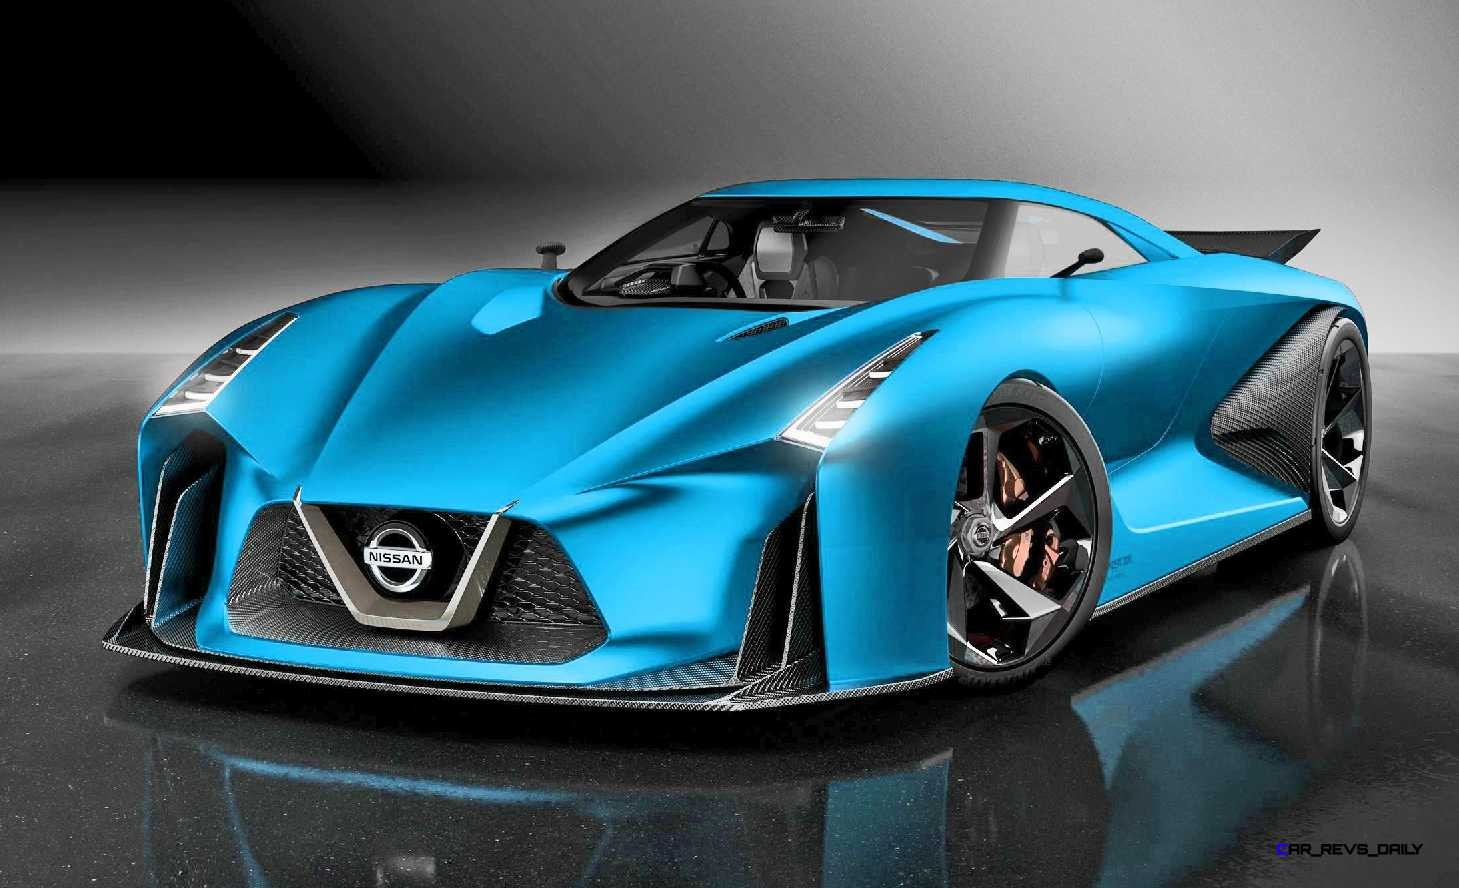 Nissan NC2020 Vision Gran Turismo Red